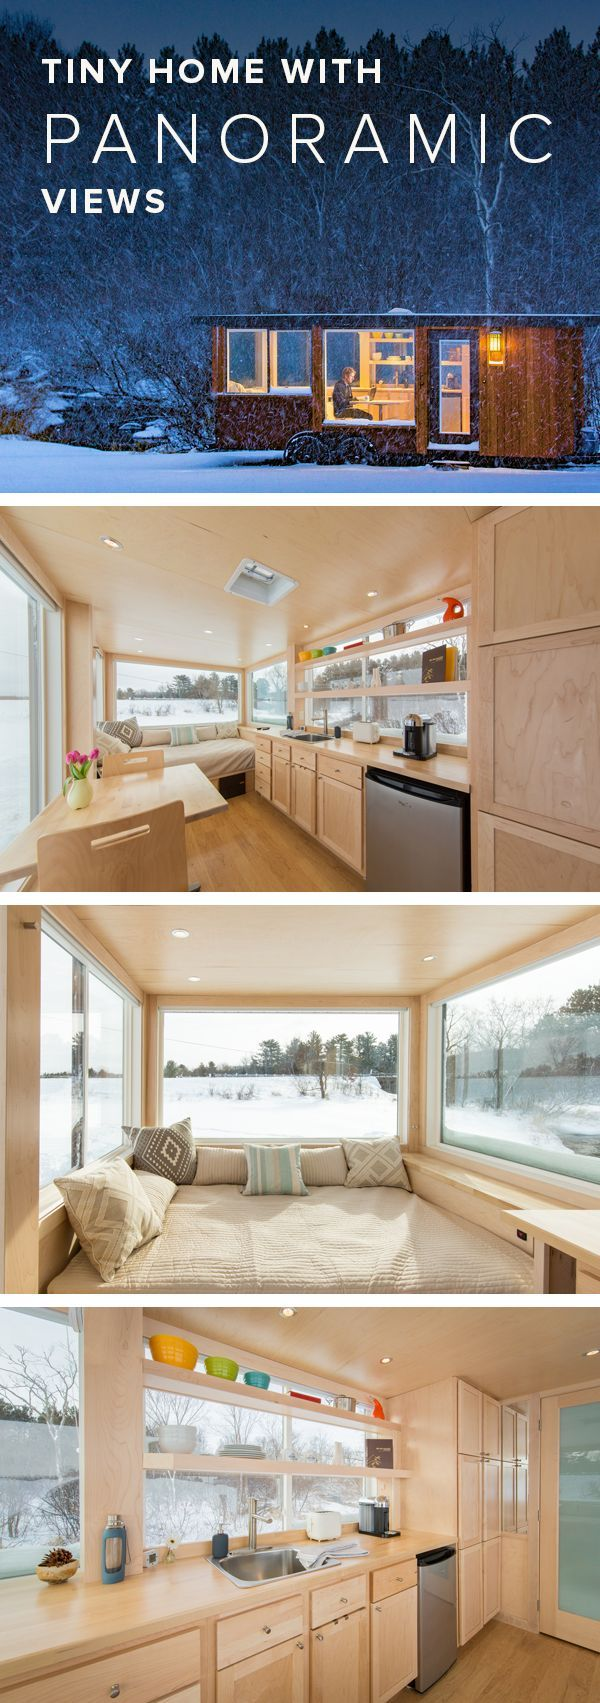 Window design for small house  small home big views see inside this stunning tiny home  tiny